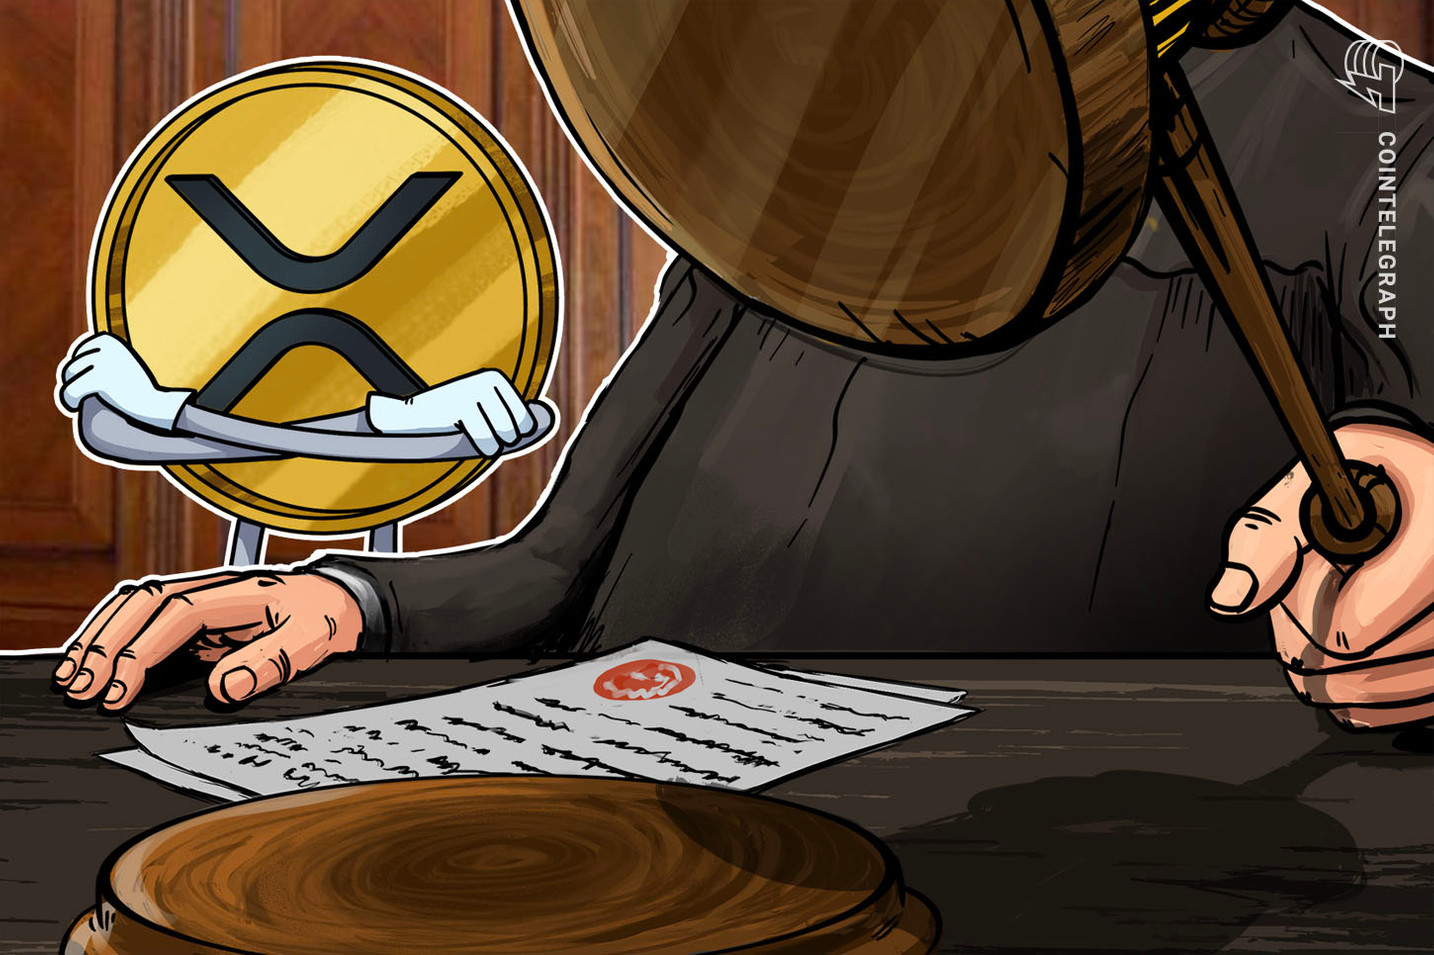 Australian Hacker Pleads Guilty to Stealing $450,000 in XRP Last Year